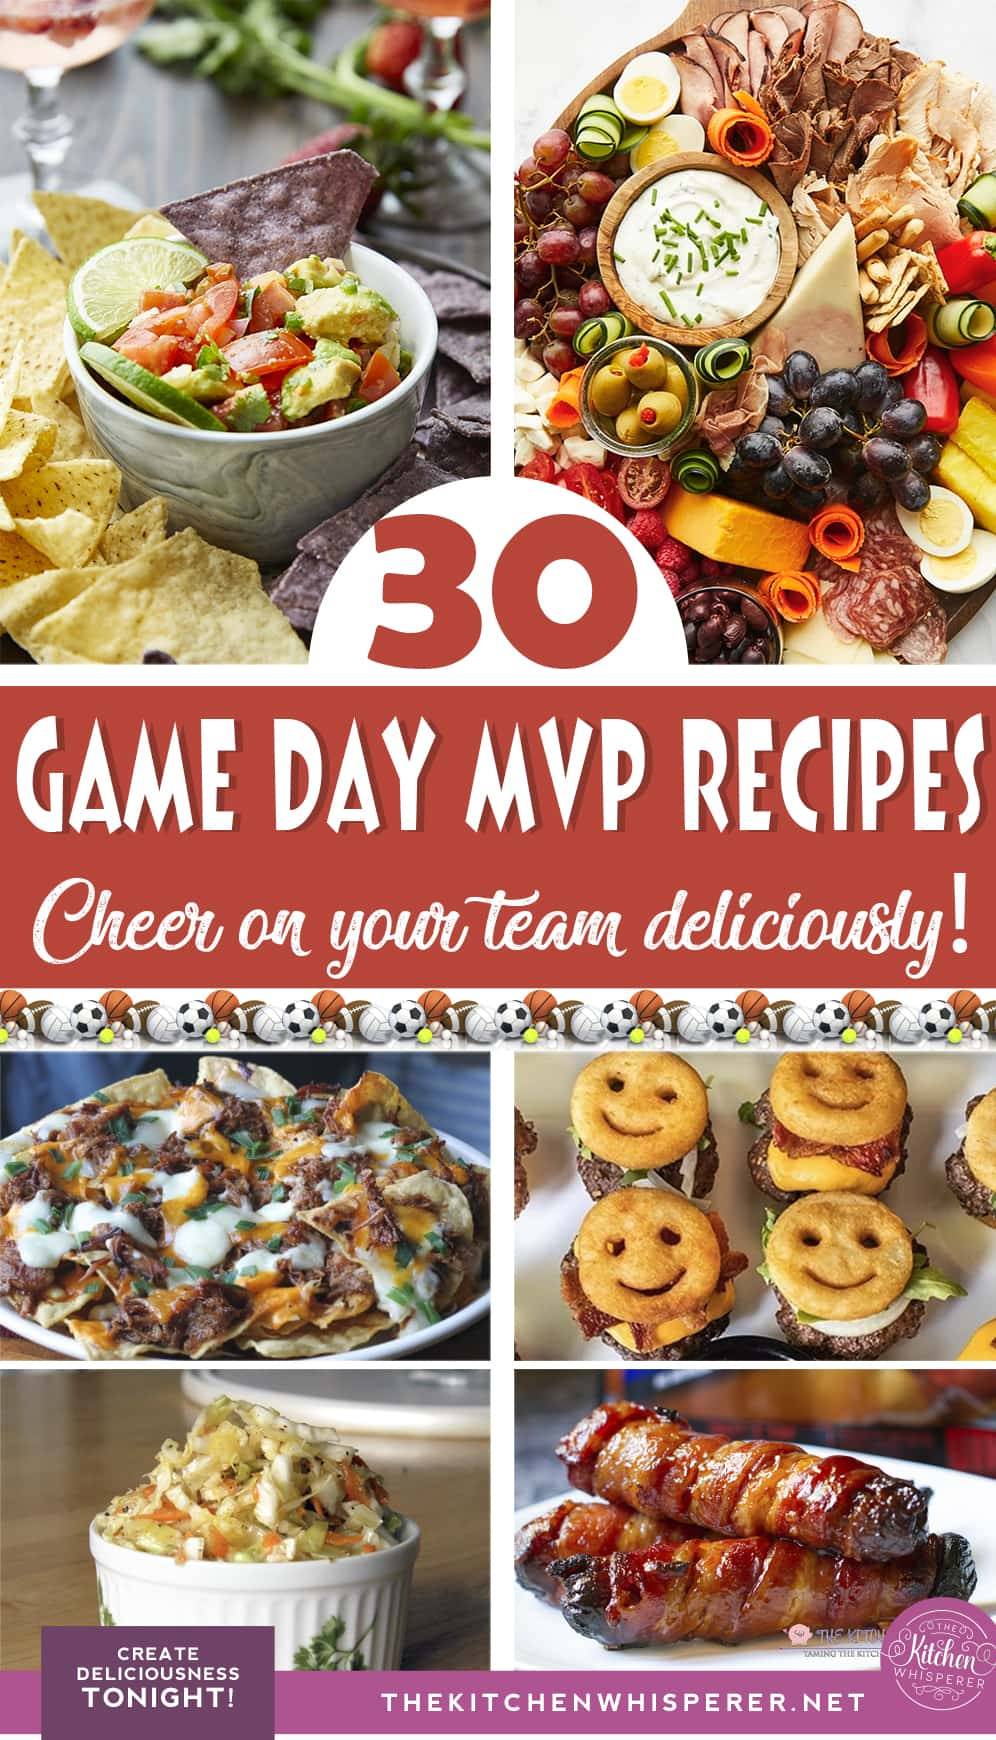 A collection of 30 game day recipes to make you the MVP of the food game.